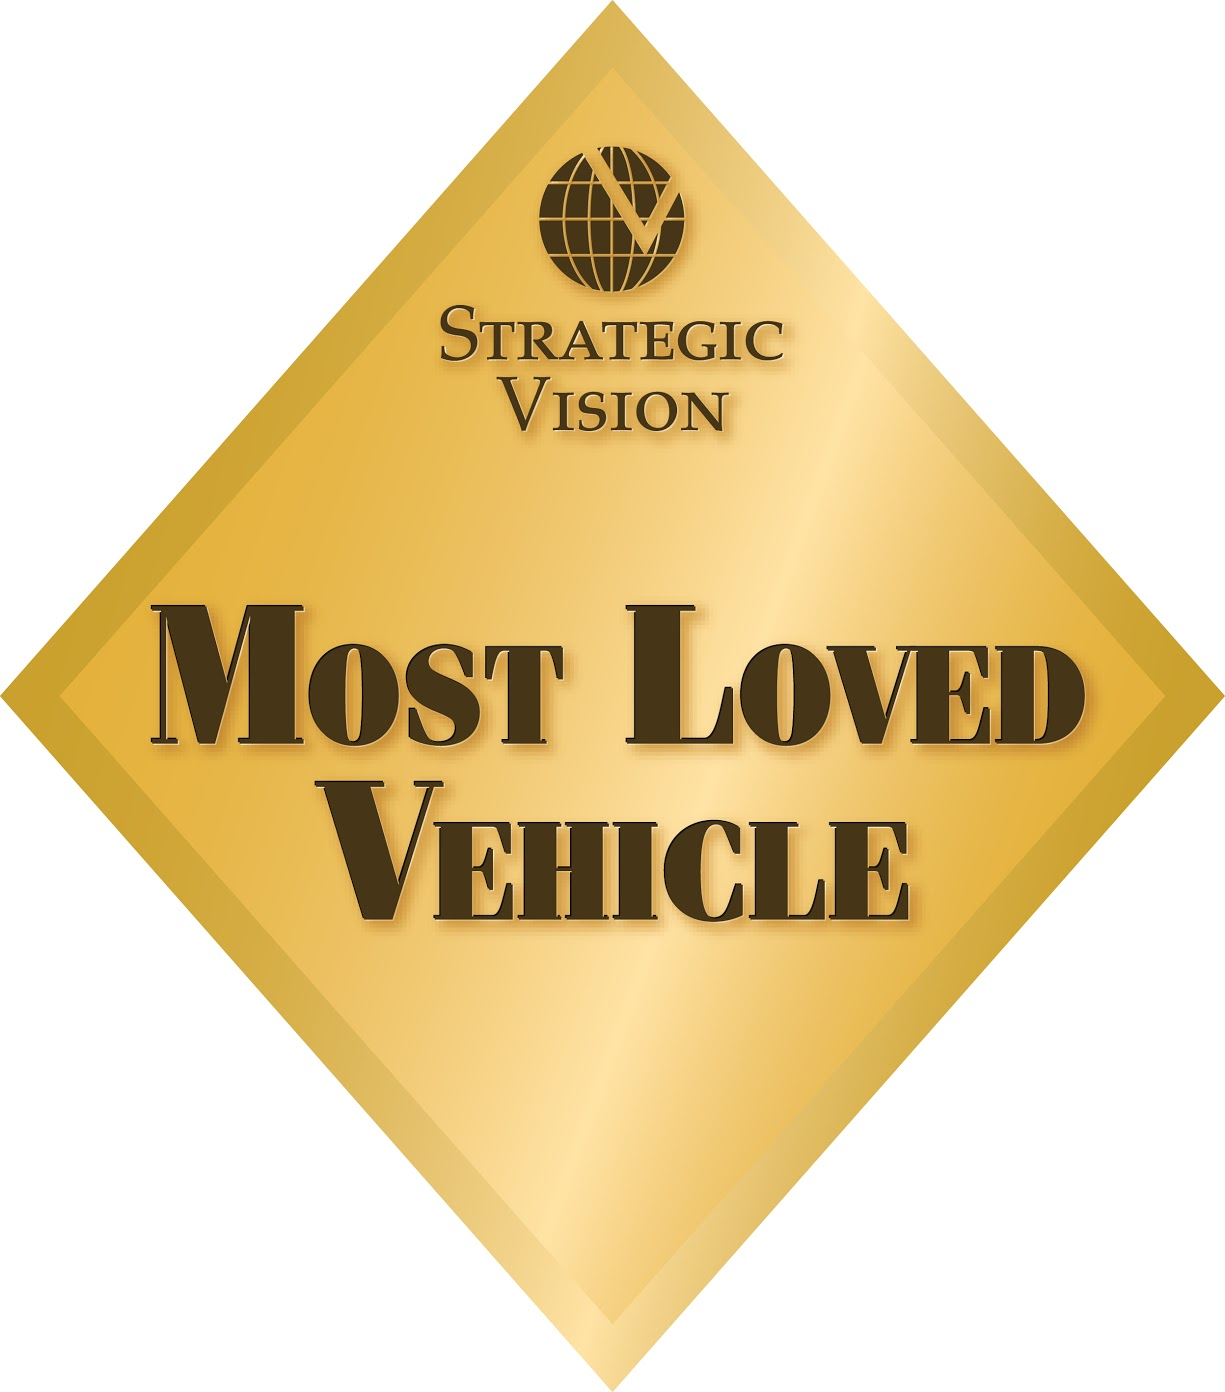 Most Loved Vehicle